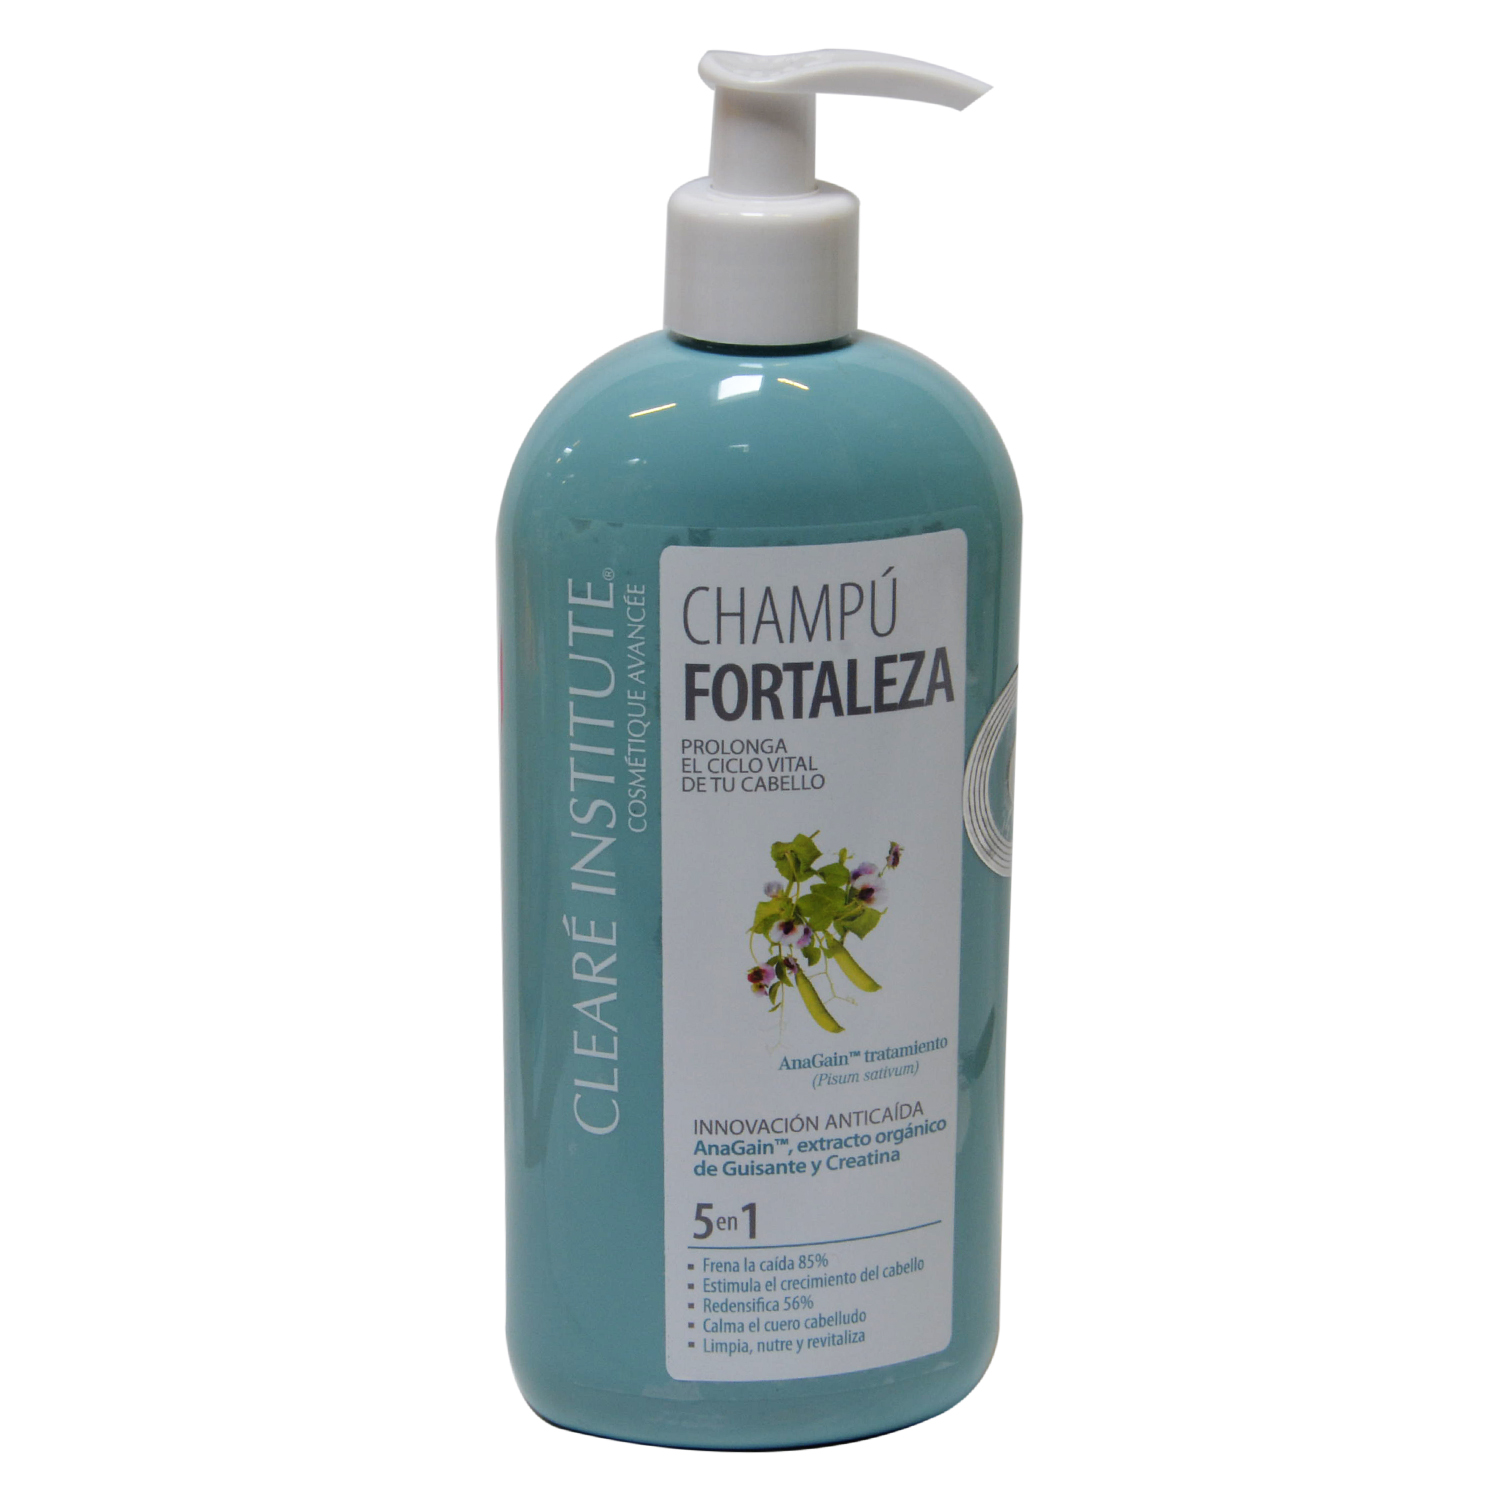 Champú anticaída Fortaleza Clearé Institute 400 ml.